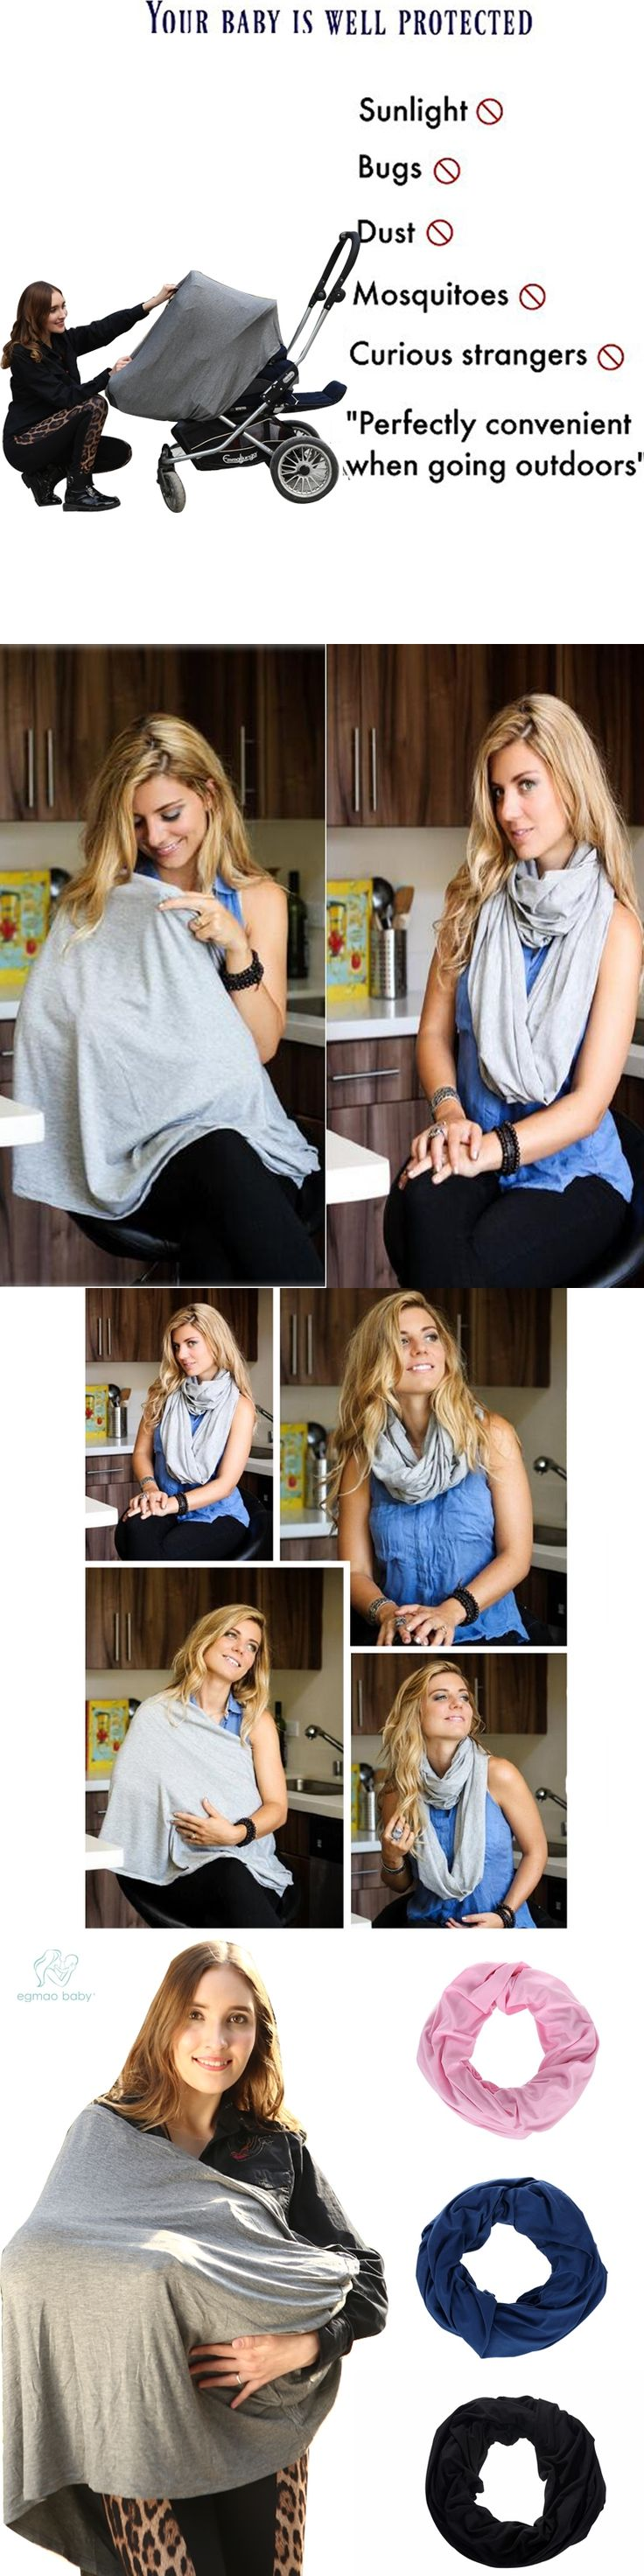 Stylish 100% Cotton Nursing Cover Infinity Nursing Scarf for Breastfeeding, Nursing Happens Infinity Breastfeeding Scarf